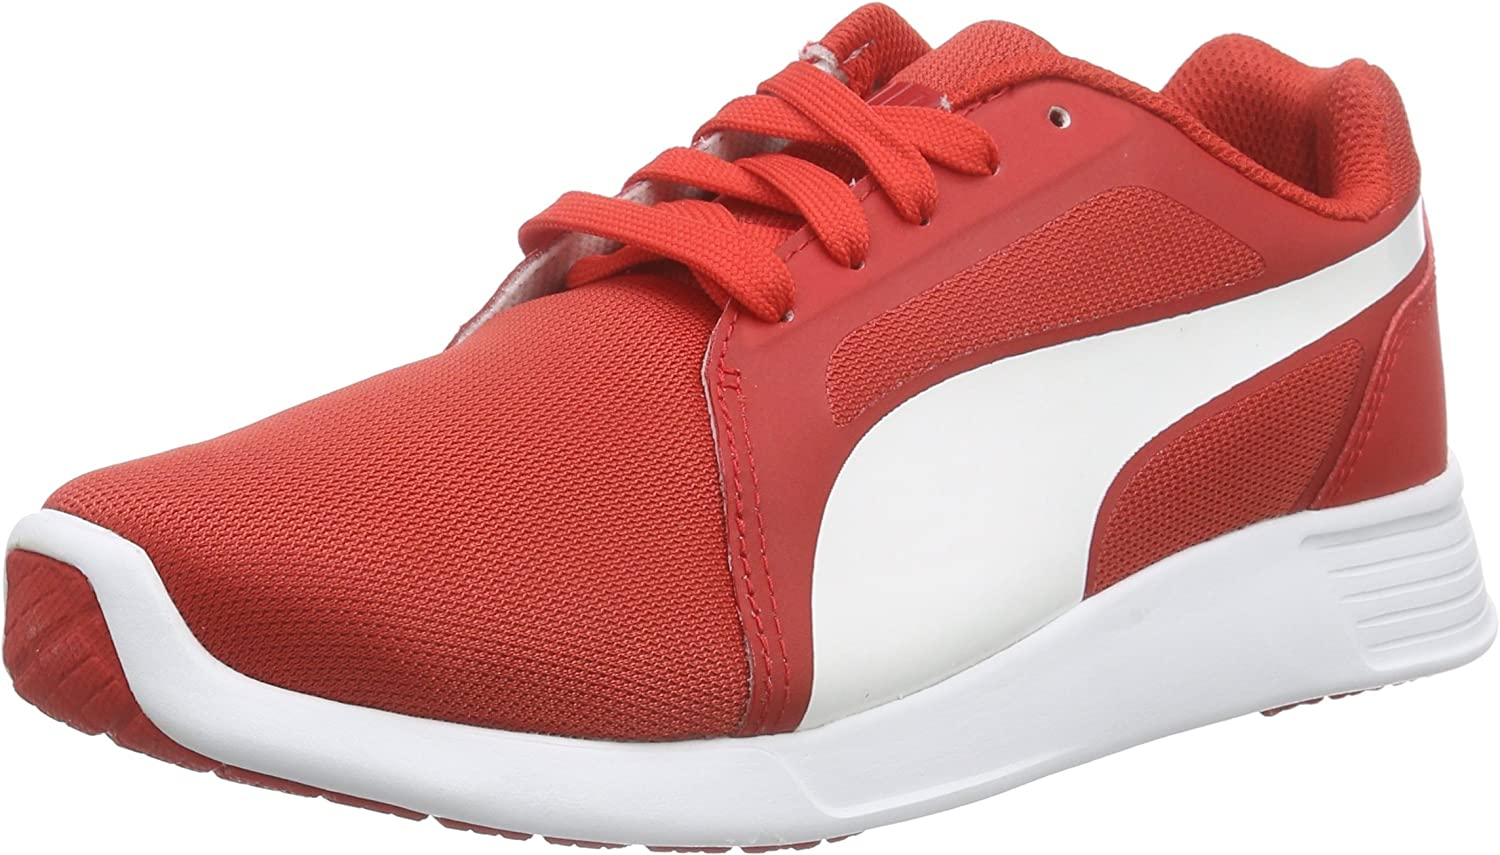 Puma St Trainer Evo, Unisex Adults' Low-Top Sneakers